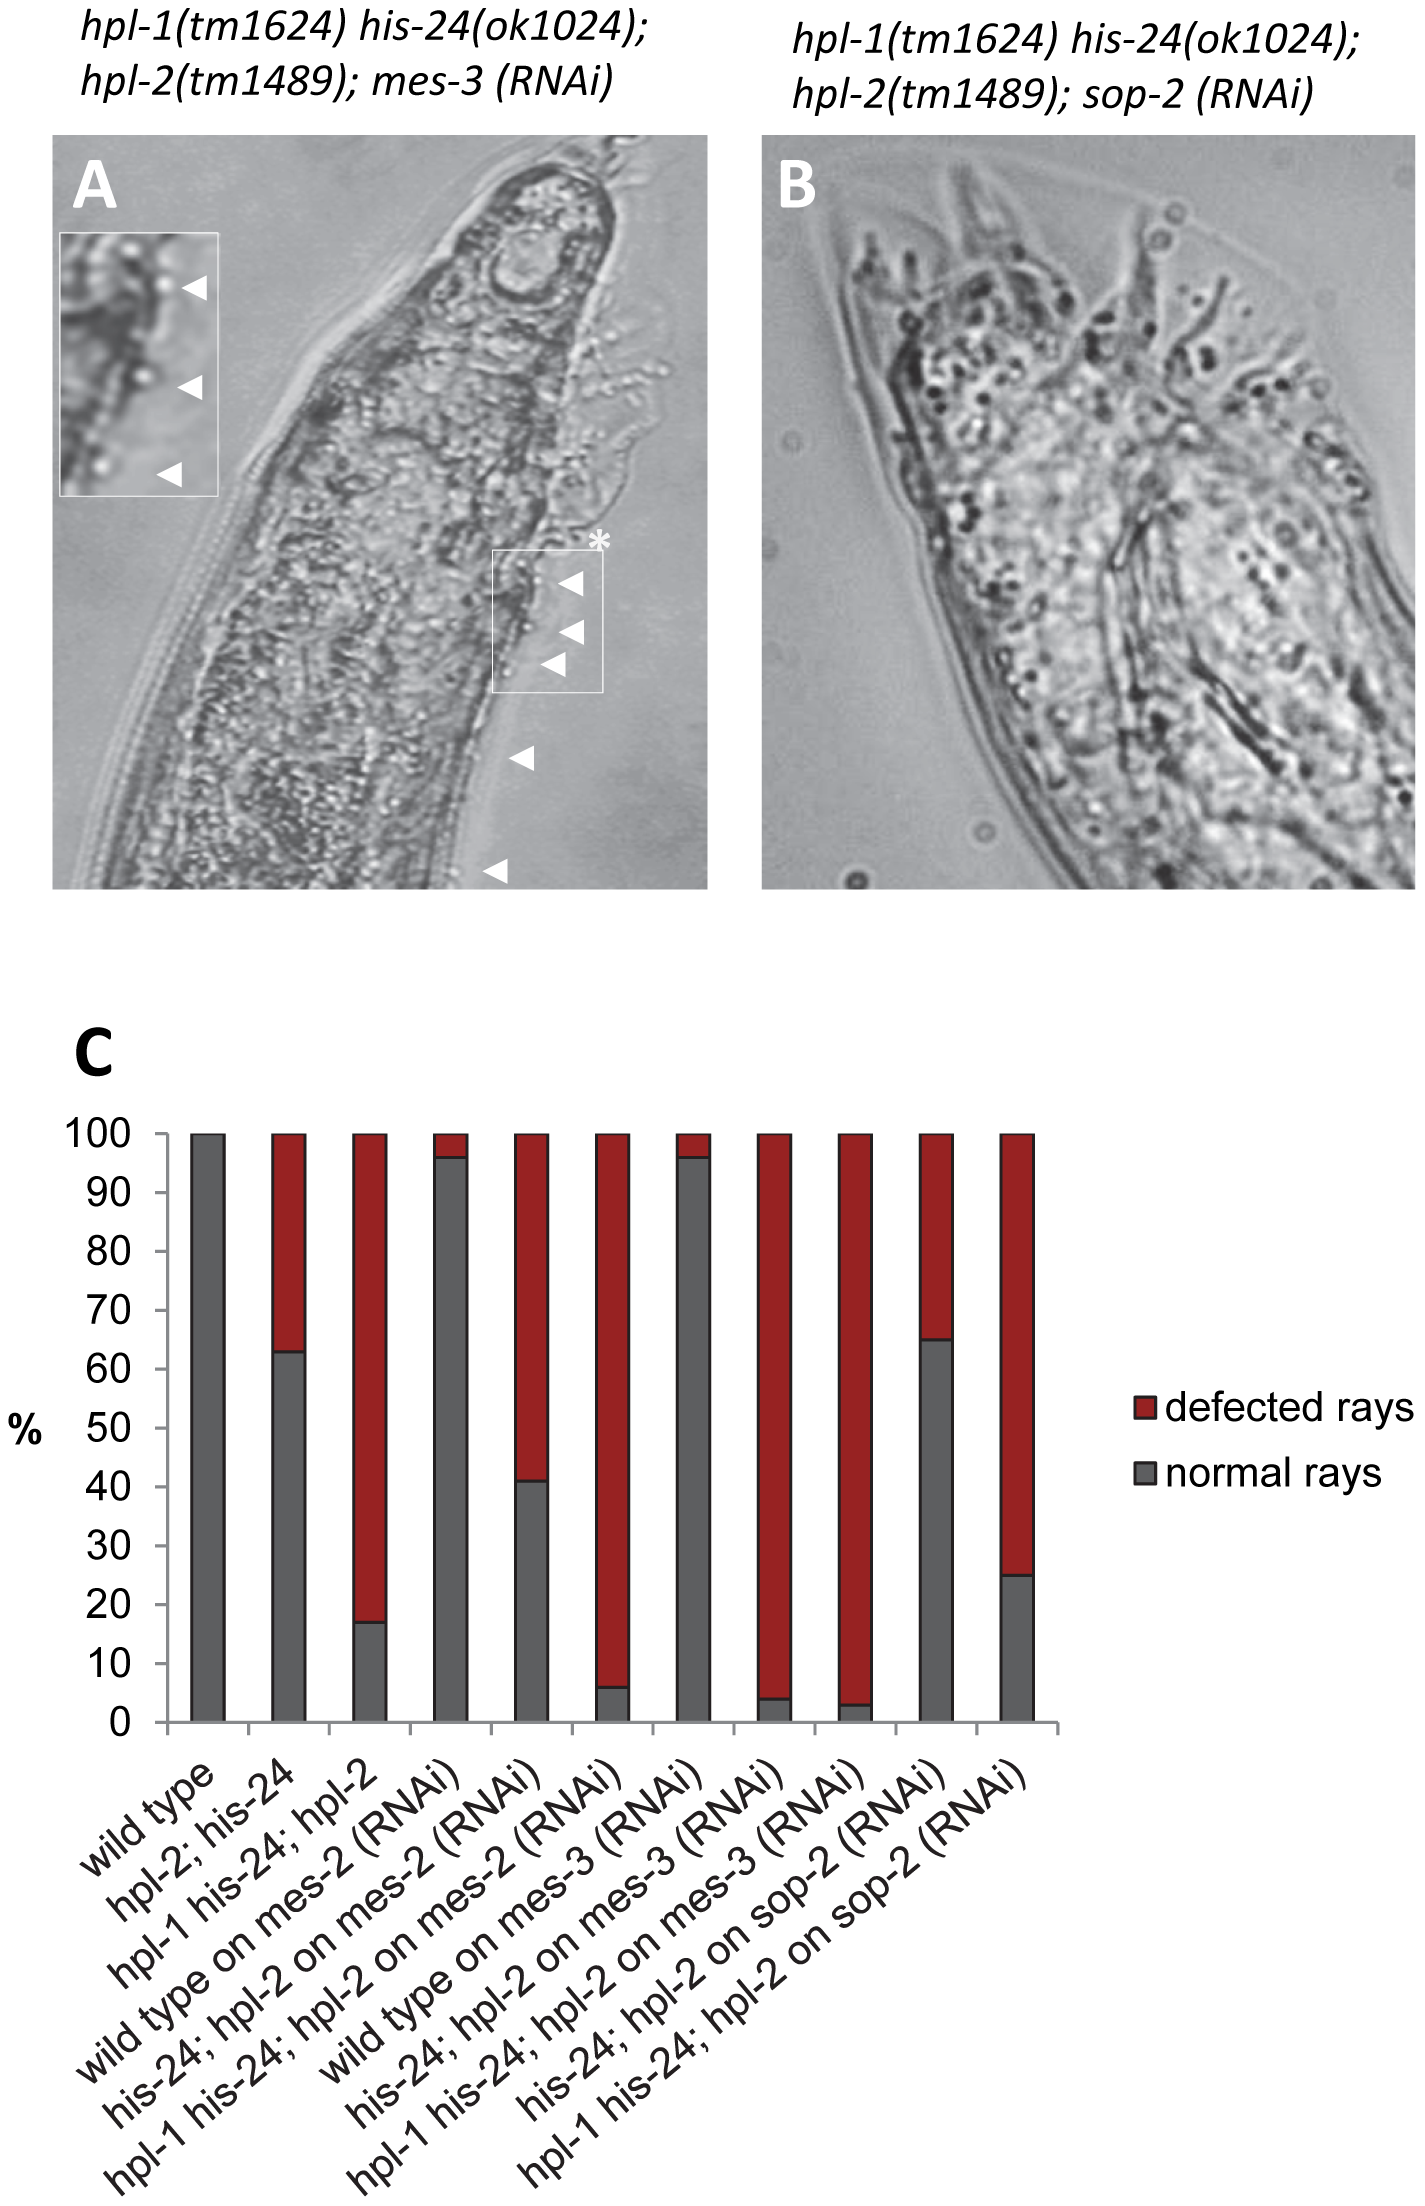 MES-2 and MES-3 enhances the number of defected rays in animals lacking <i>hpl-2</i> and <i>his-24</i>.